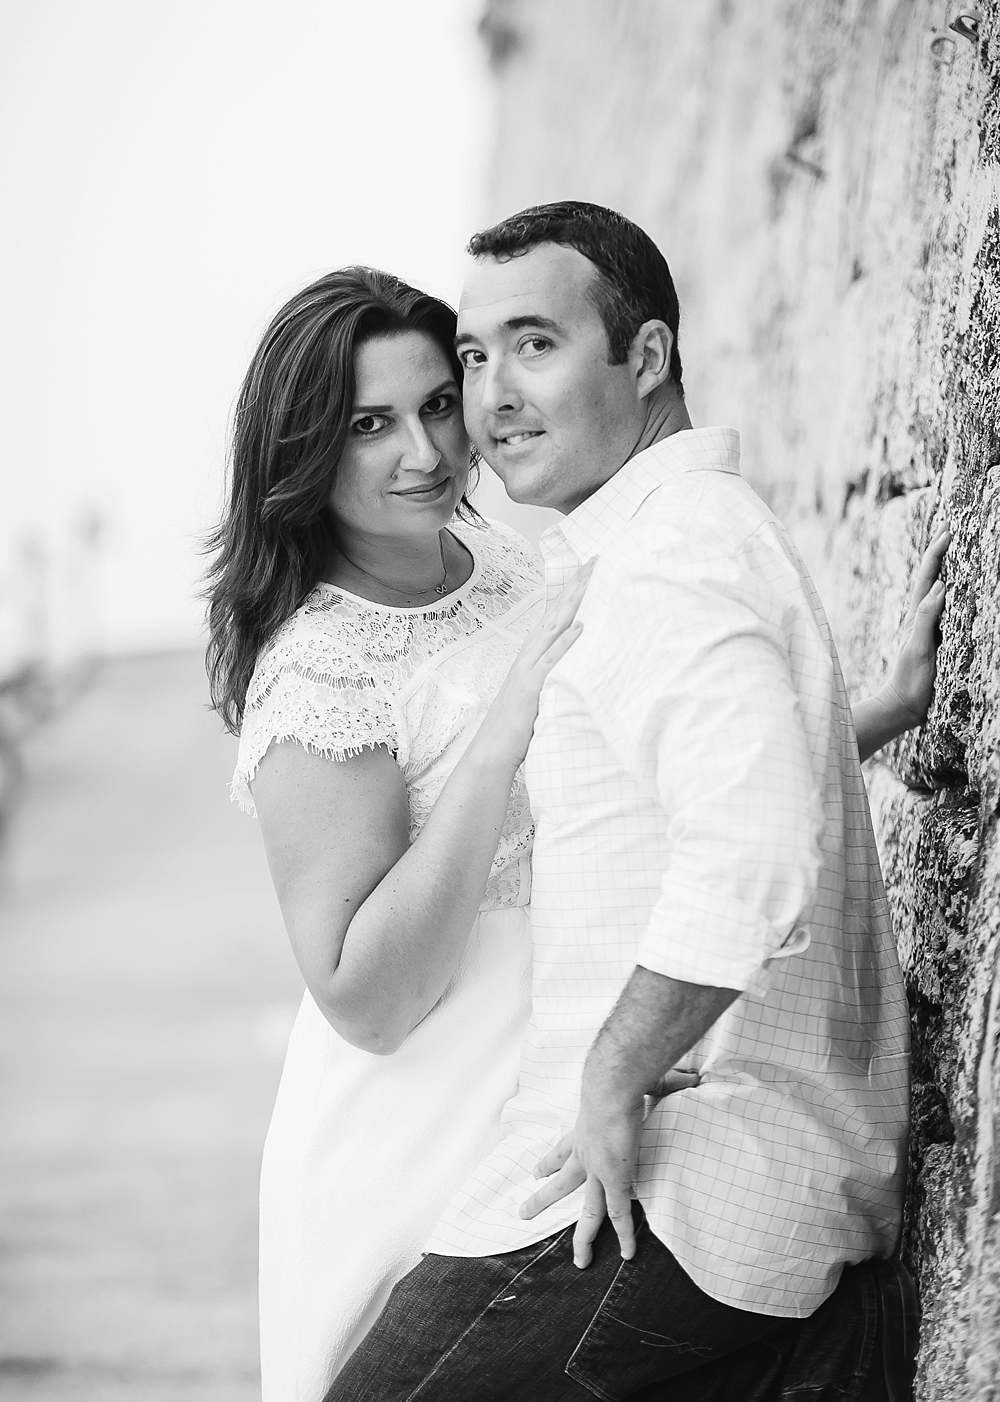 Engagement Shoot Malta - Photographer Shane P. Watts